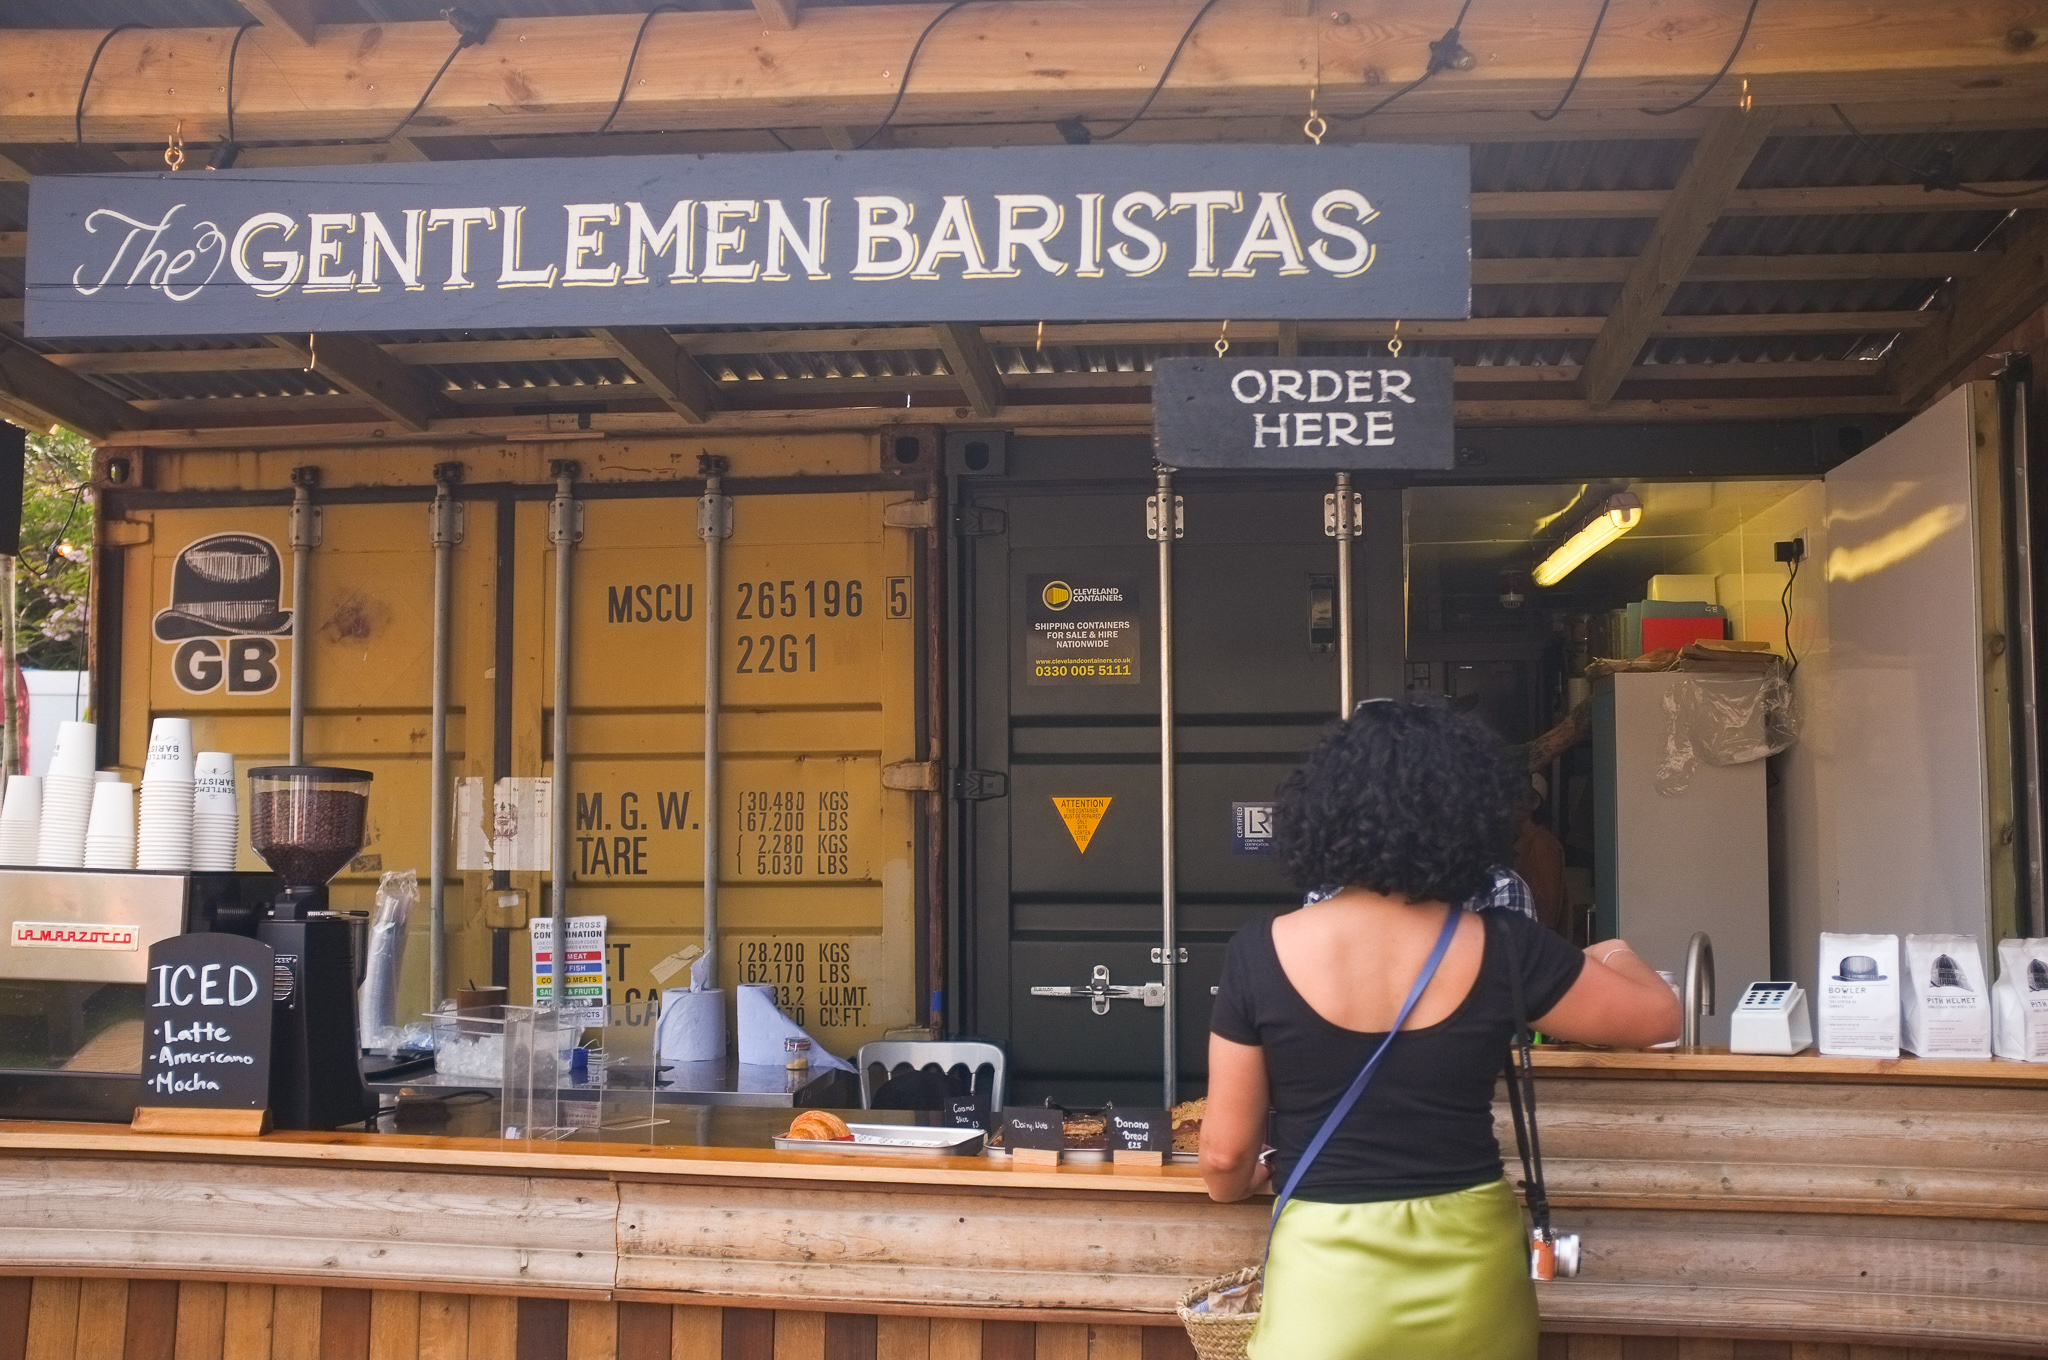 Grabbing a Turmeric Latte at Gentlemen Baristas in Vinegar Yard, Bermondsey